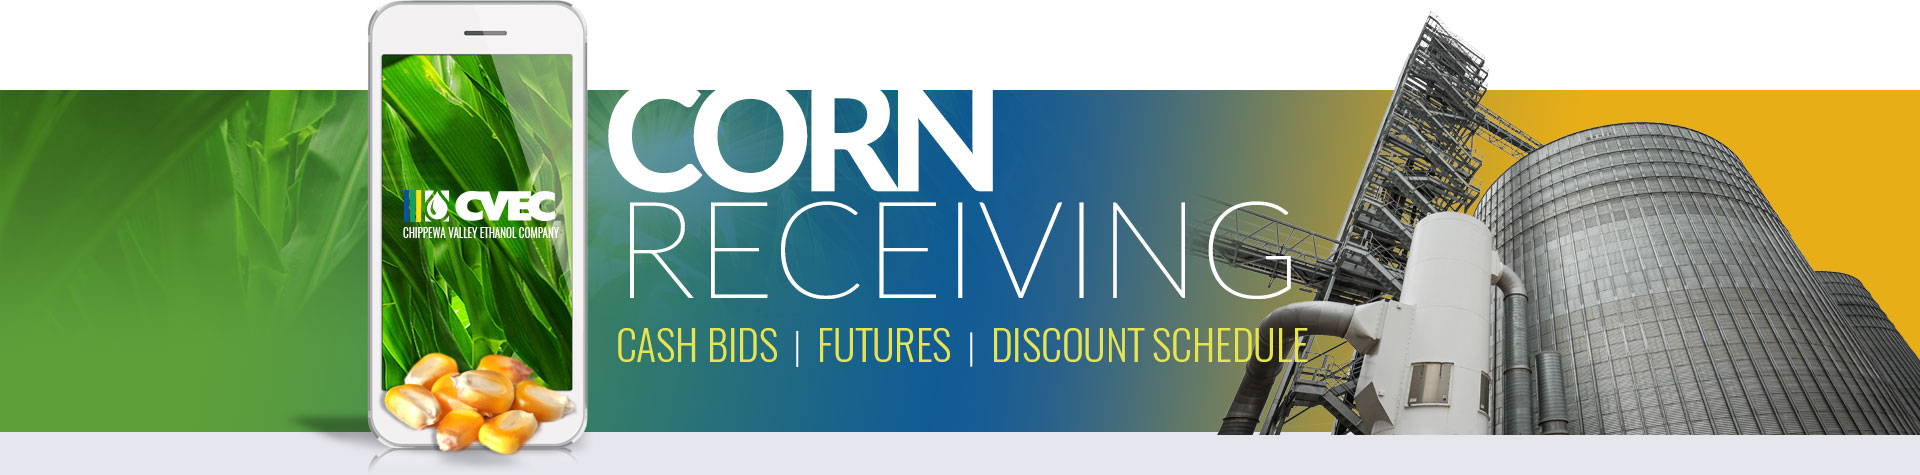 CORN DISCOUNT SCHEDULE